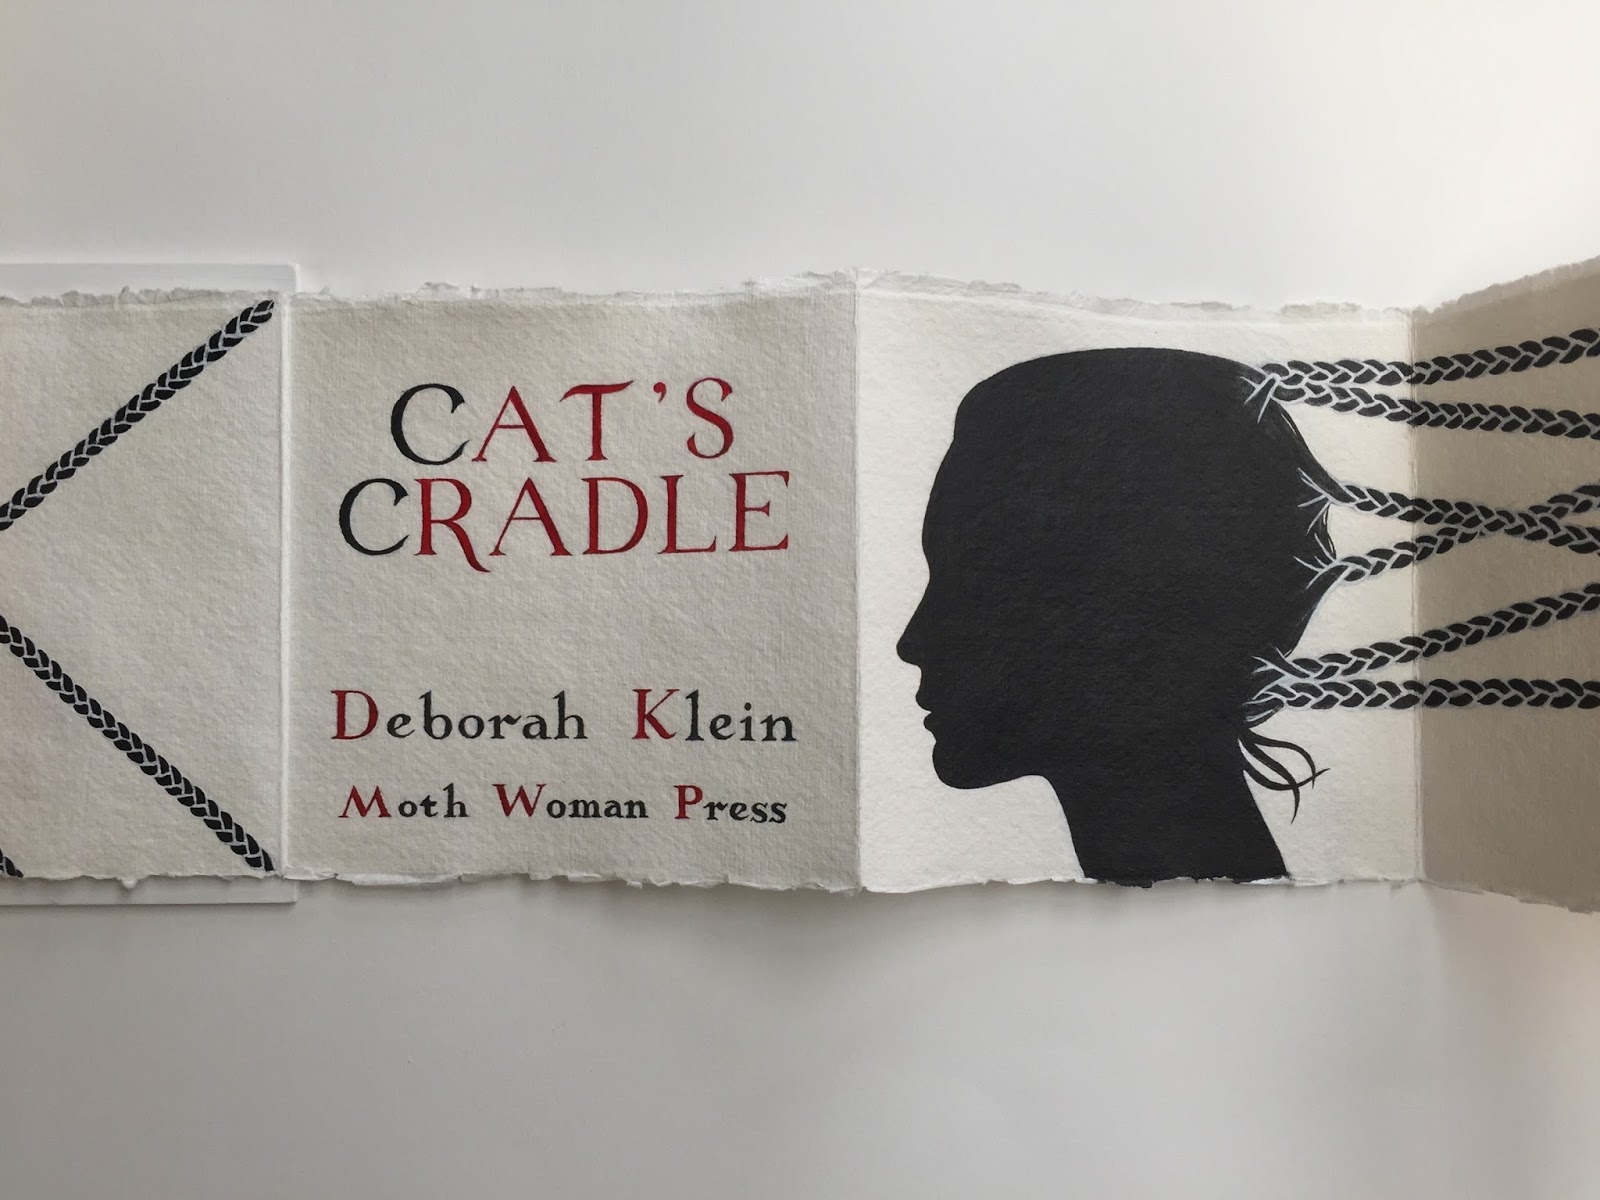 cats cradle bans without reason Cat's cradle is the tale of a writer, a scientist, a religious leader, a midget, and a clarinet player that takes the reader on a madcap adventure leading up to the end of the world in this work, vonnegut comments on religion, relationships, philosophy, and the woes of scientific discovery.